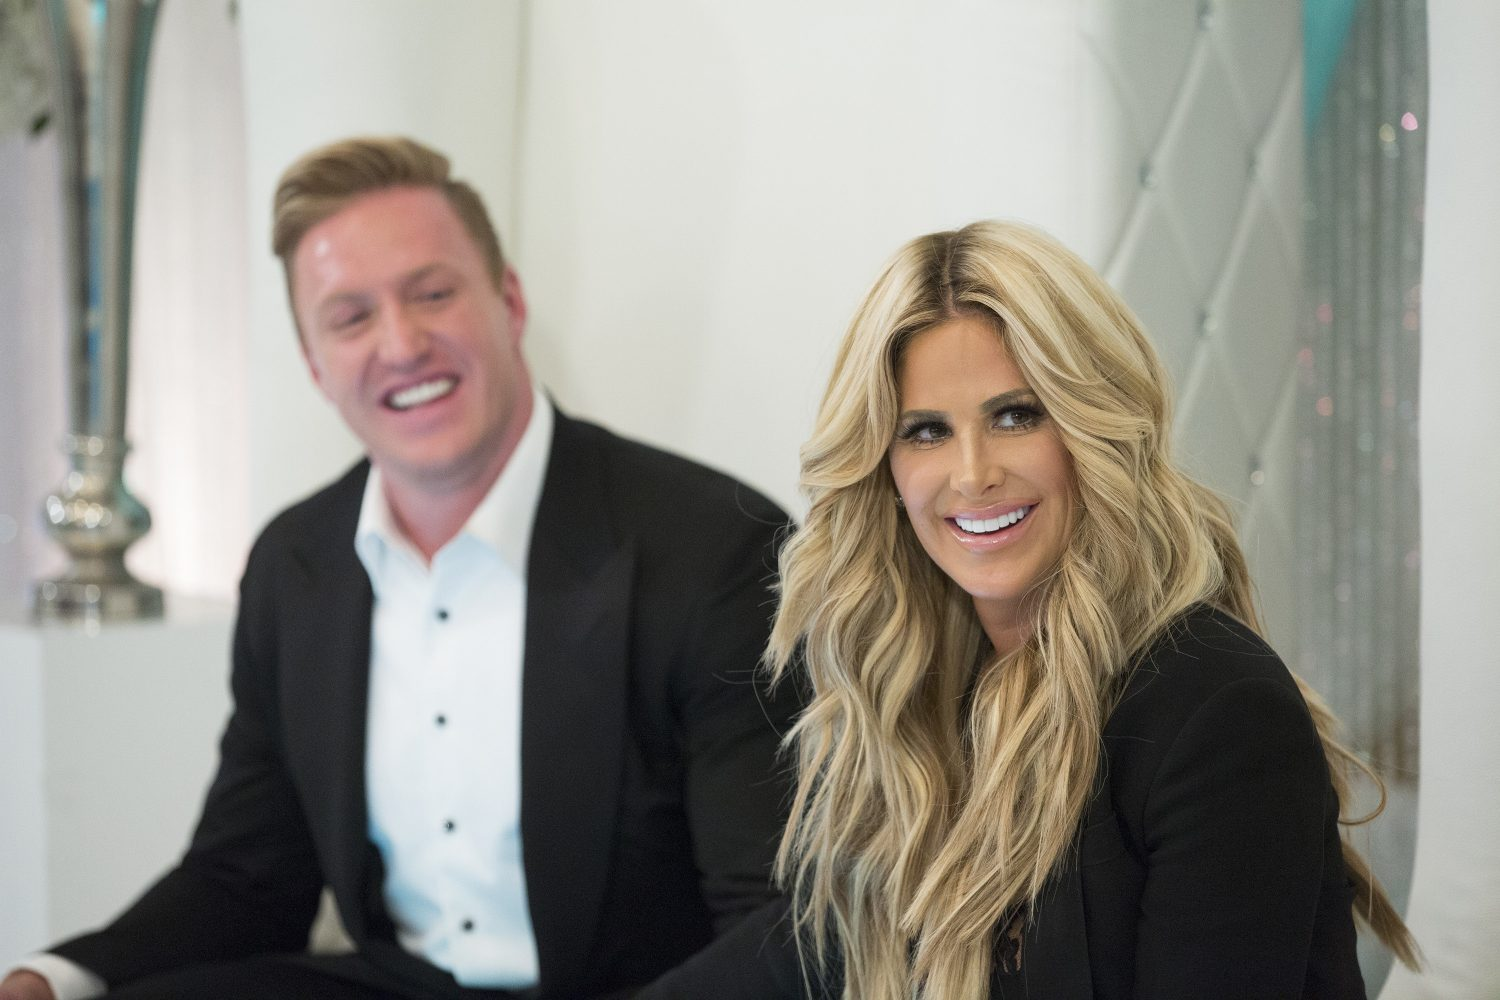 It's a good thing Kroy Biermann didn't stick with the Bills; his 'Real Housewife' spouse, Kim Zolciak-Biermann, did not want to live here. (Photo by Mark Hill/Bravo)